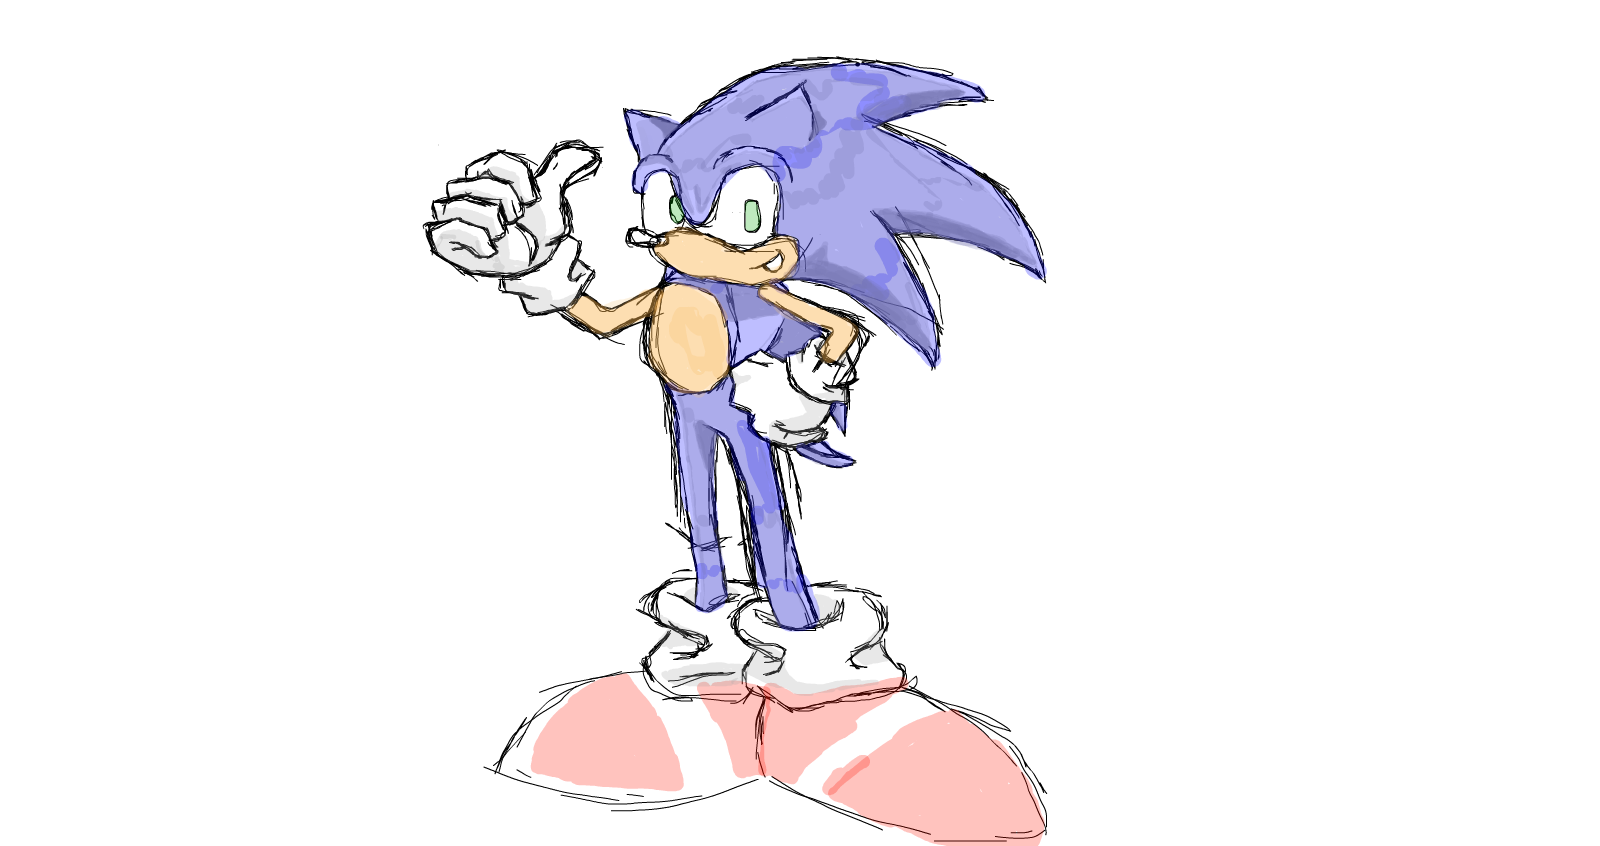 working in progress (sonic)